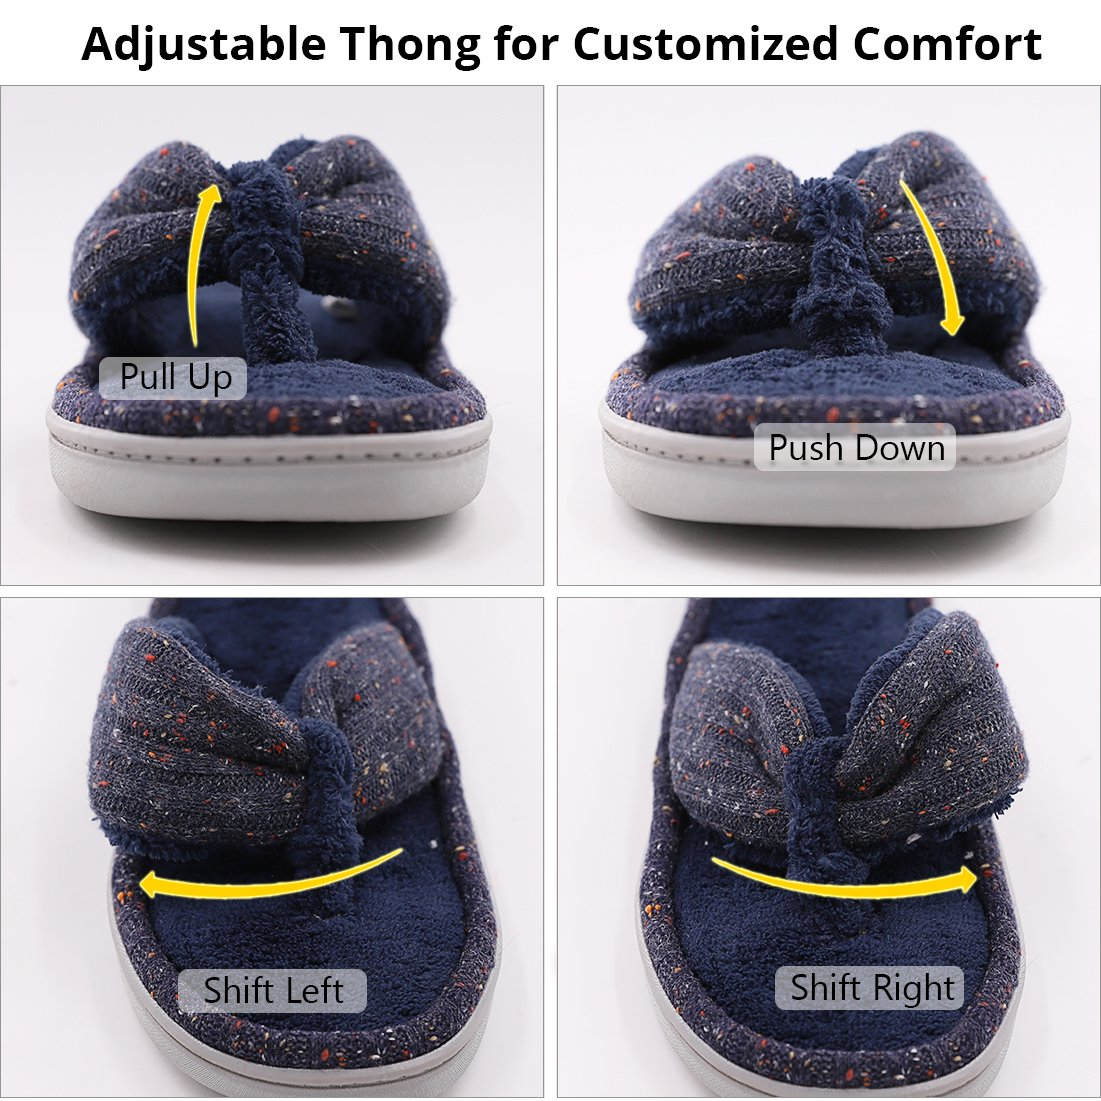 Women's Soft & Comfy Knitted Plush Fleece Lining Memory Foam Spa Thong Flip Flops House Slippers (Large/9-10 B(M) US, Navy Blue) by HomeTop (Image #6)